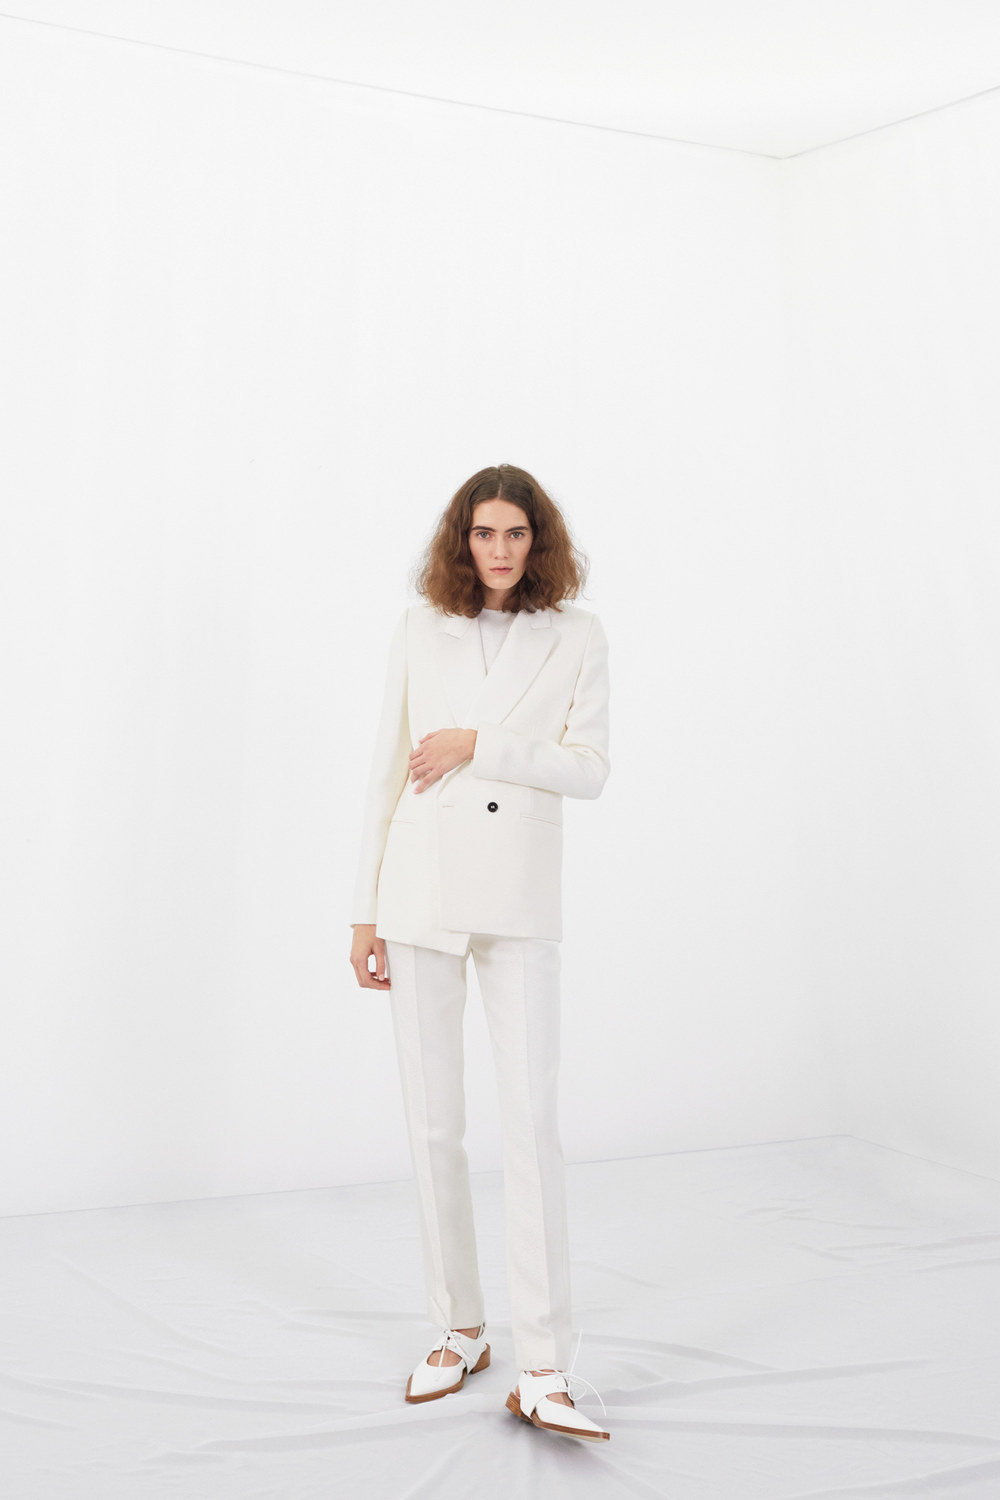 victoria-beckham-pre-fall-2016-lookbook-15.jpg